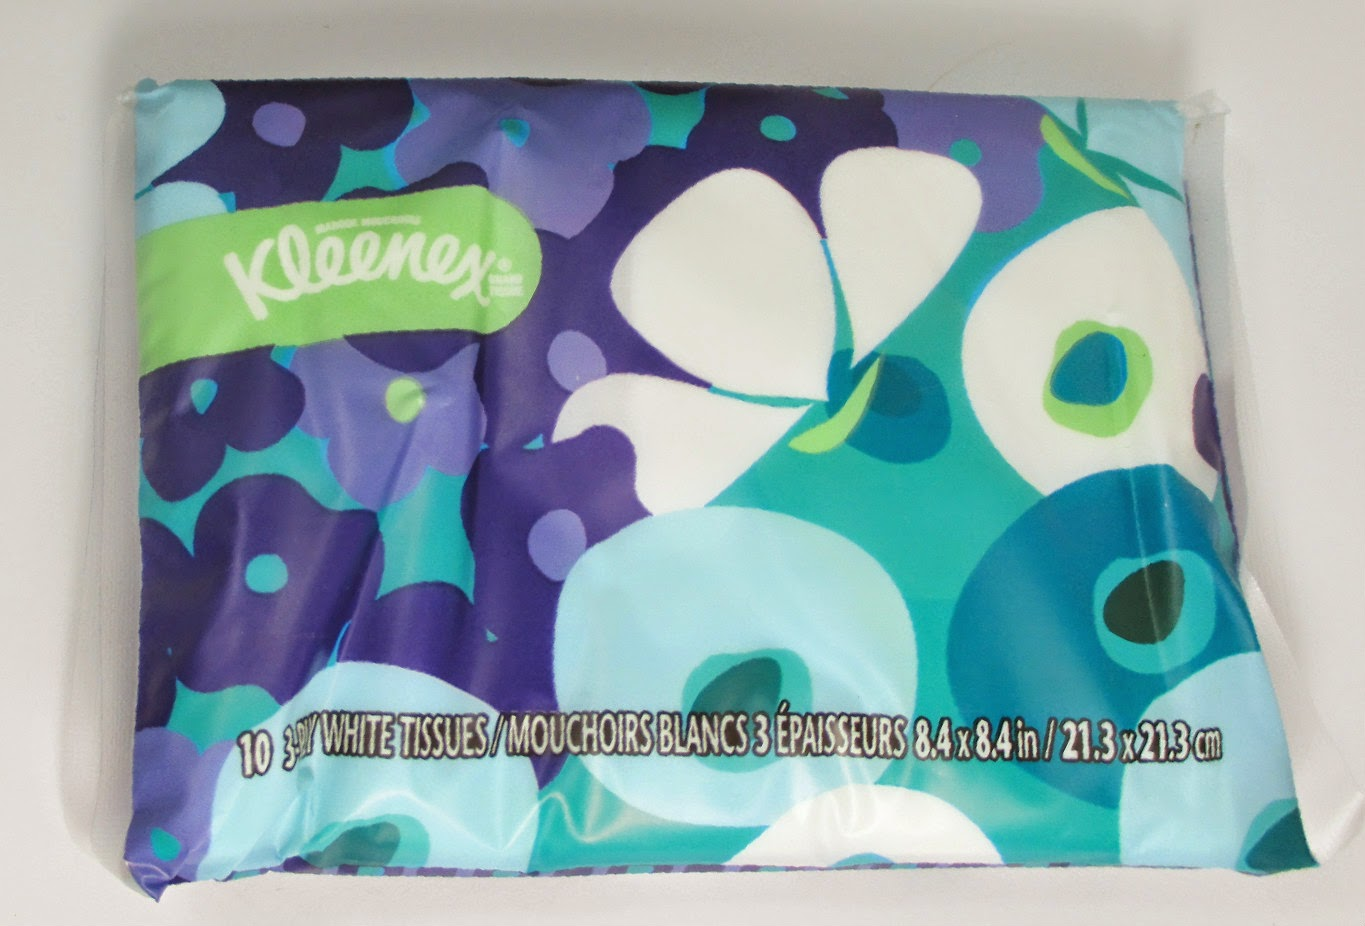 u by kotex click tampons kleenex slim packs walmart coupon